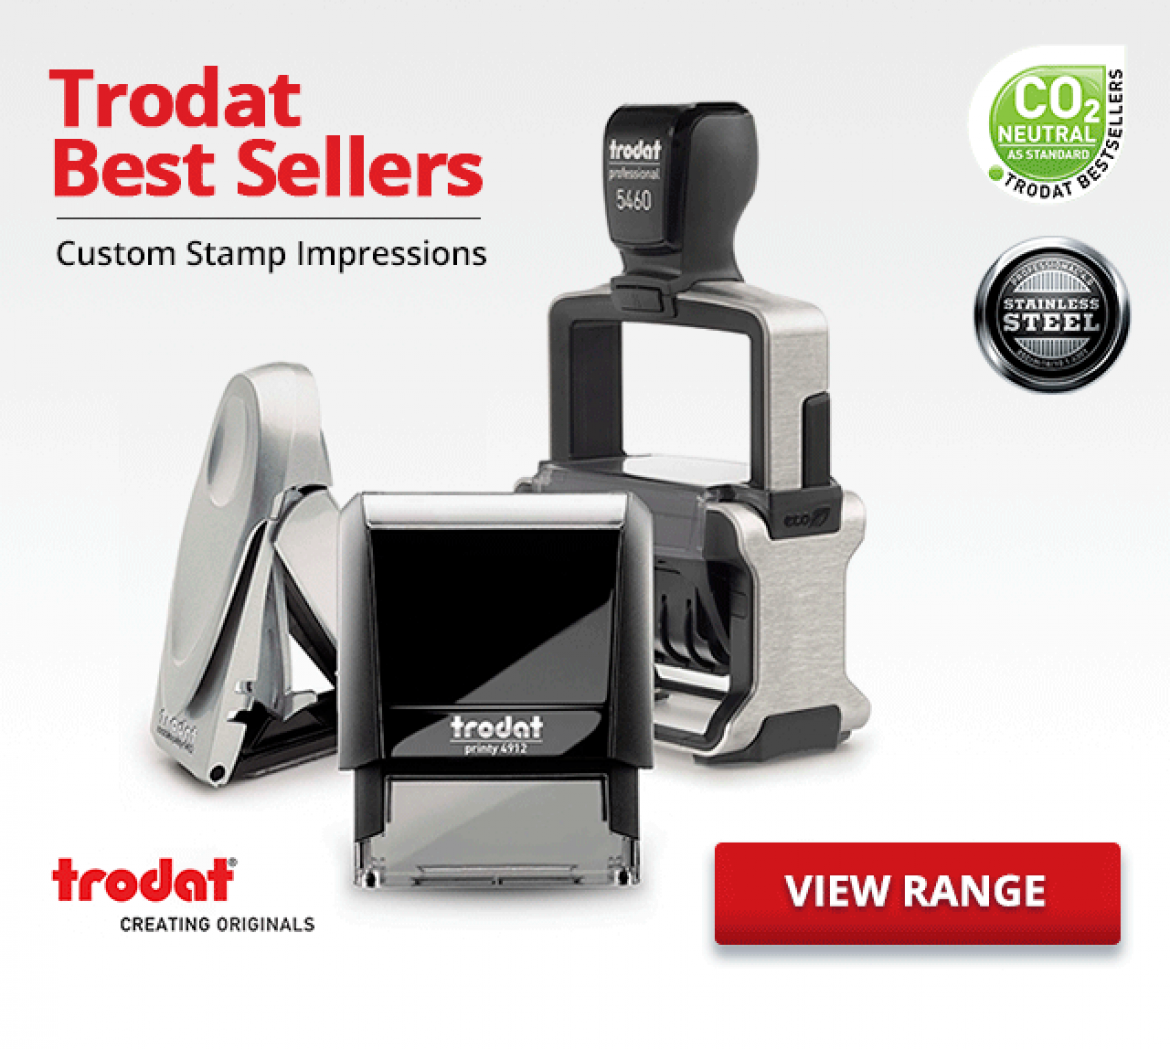 Trodat-Best-Sellers_slide